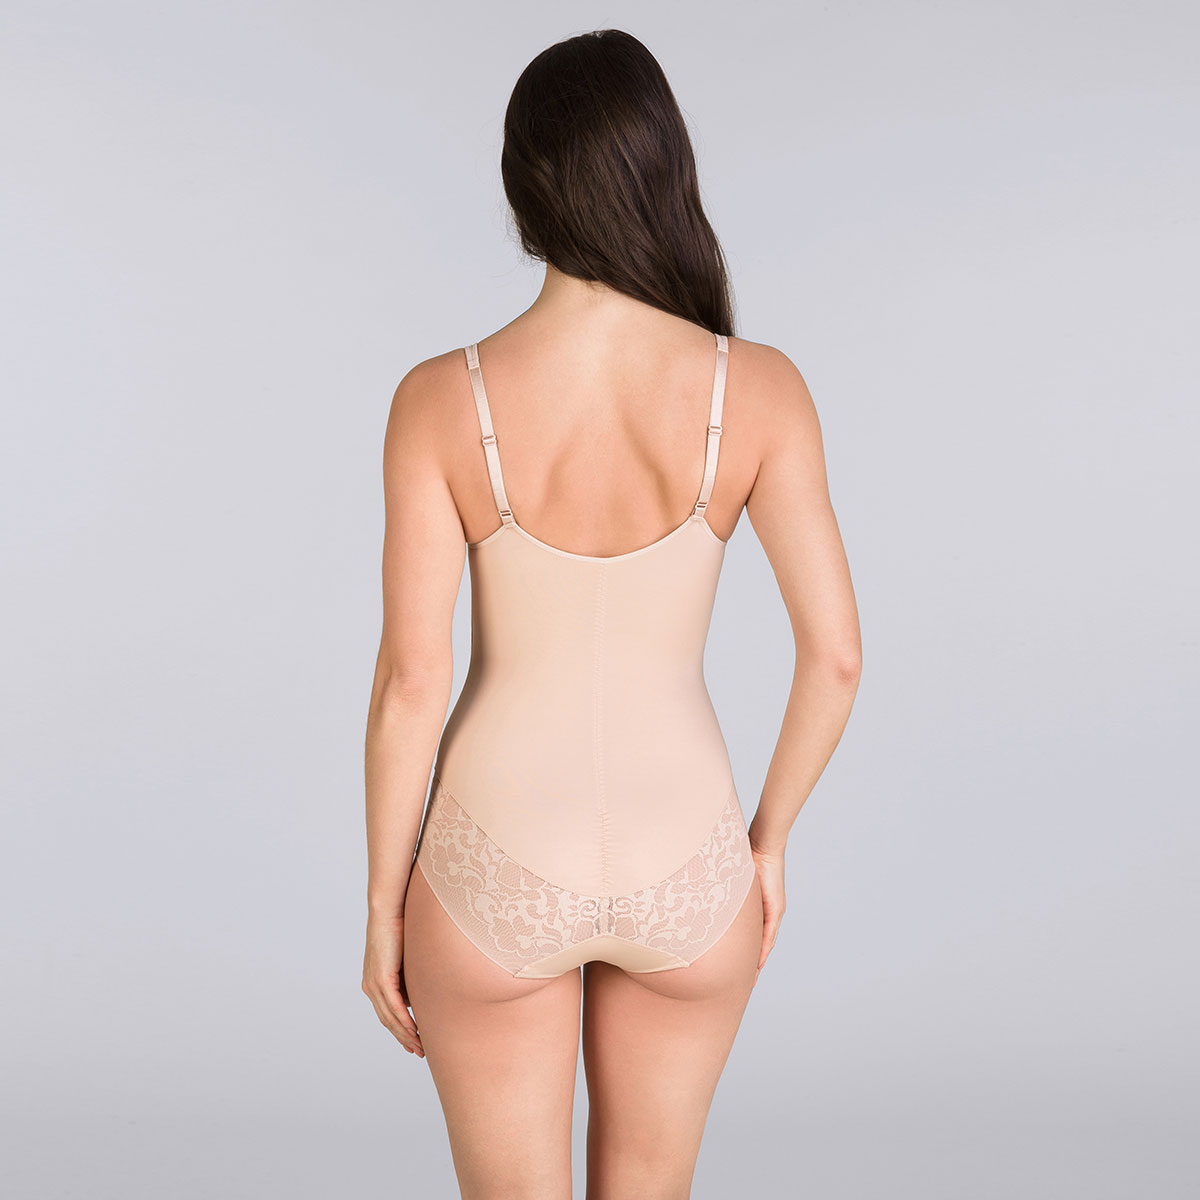 Body beige - Expert in Silhouette, , PLAYTEX